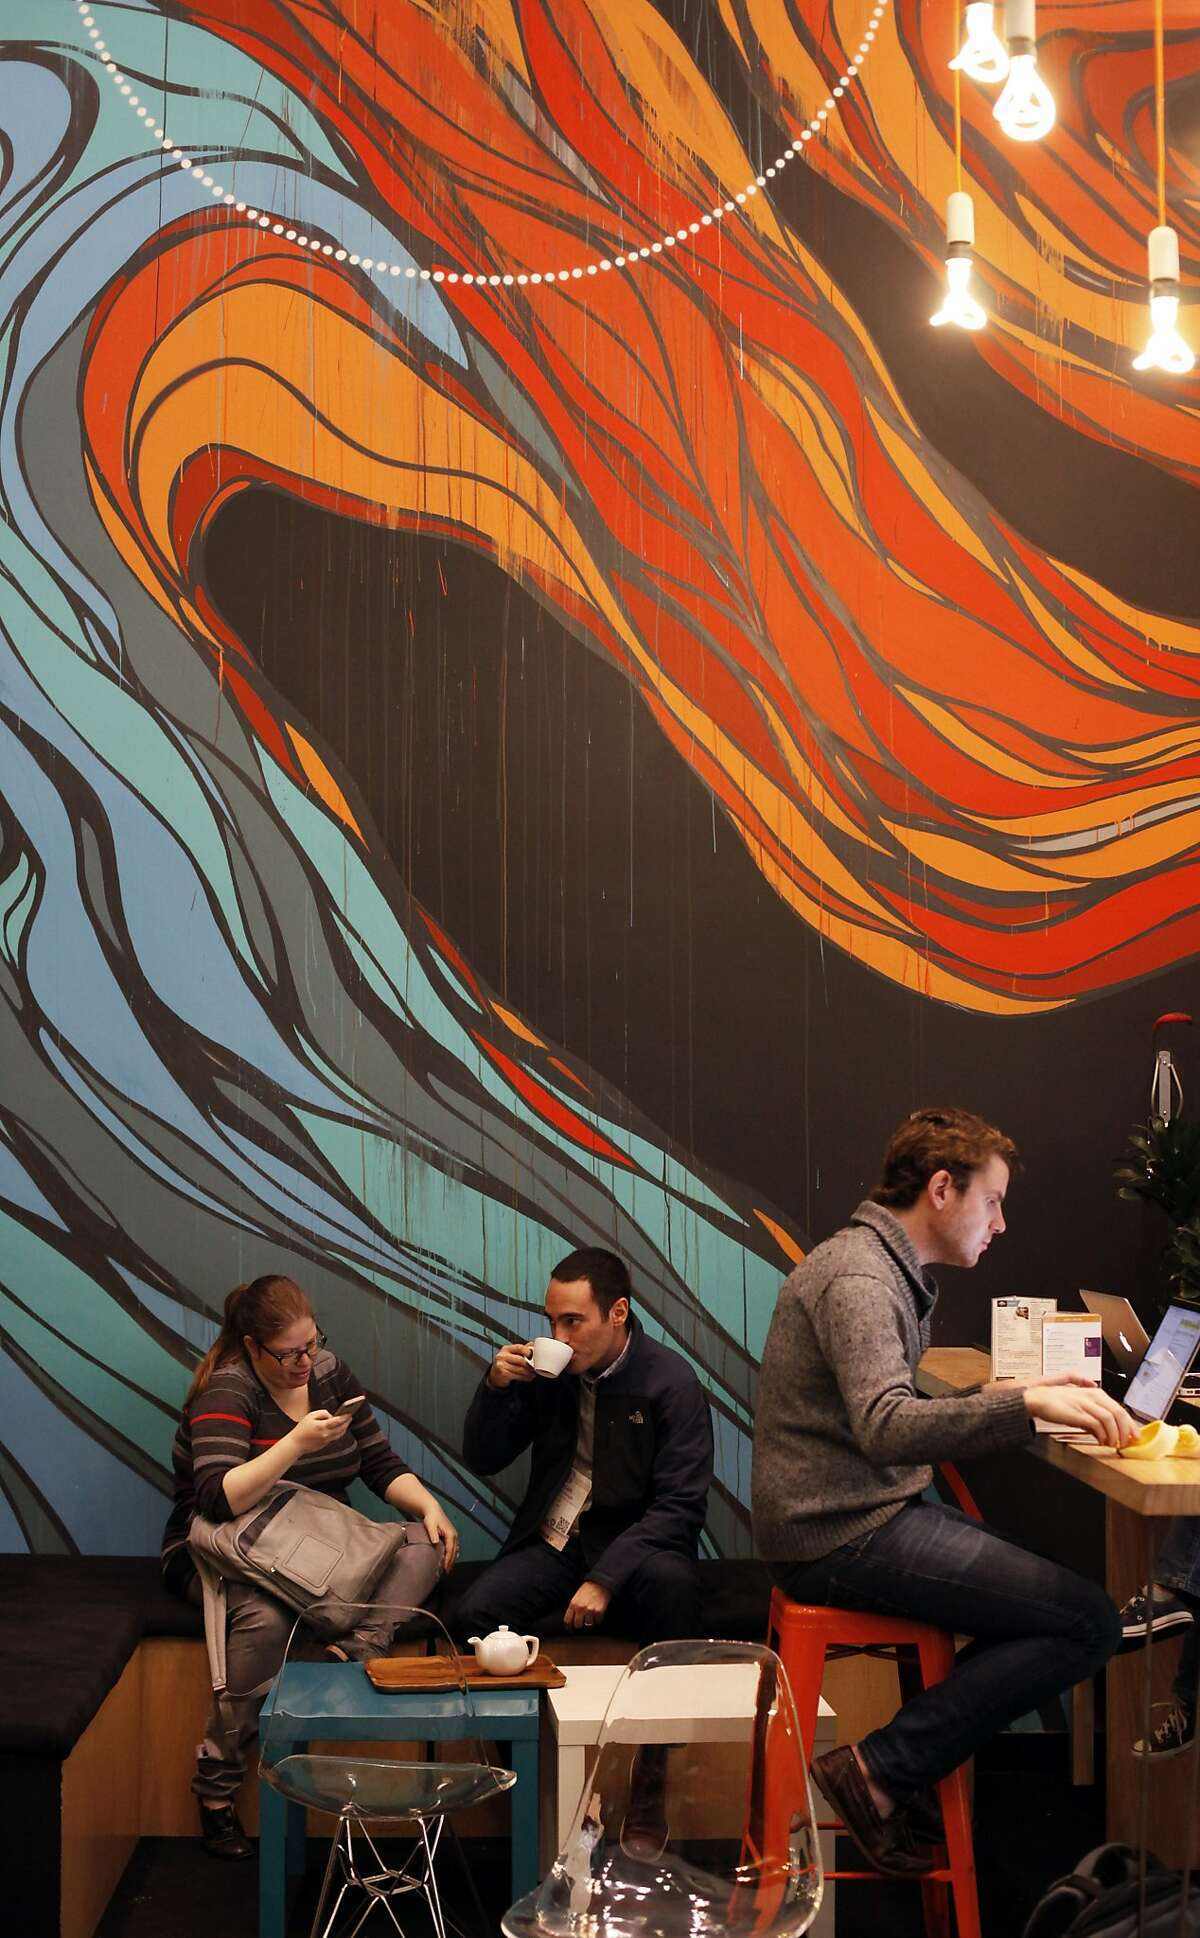 Patrons work and drink tea at Workshop Cafe on November 11, 2014 in San Francisco, Calif. Behind them is a mural by local artist Erick Otto.